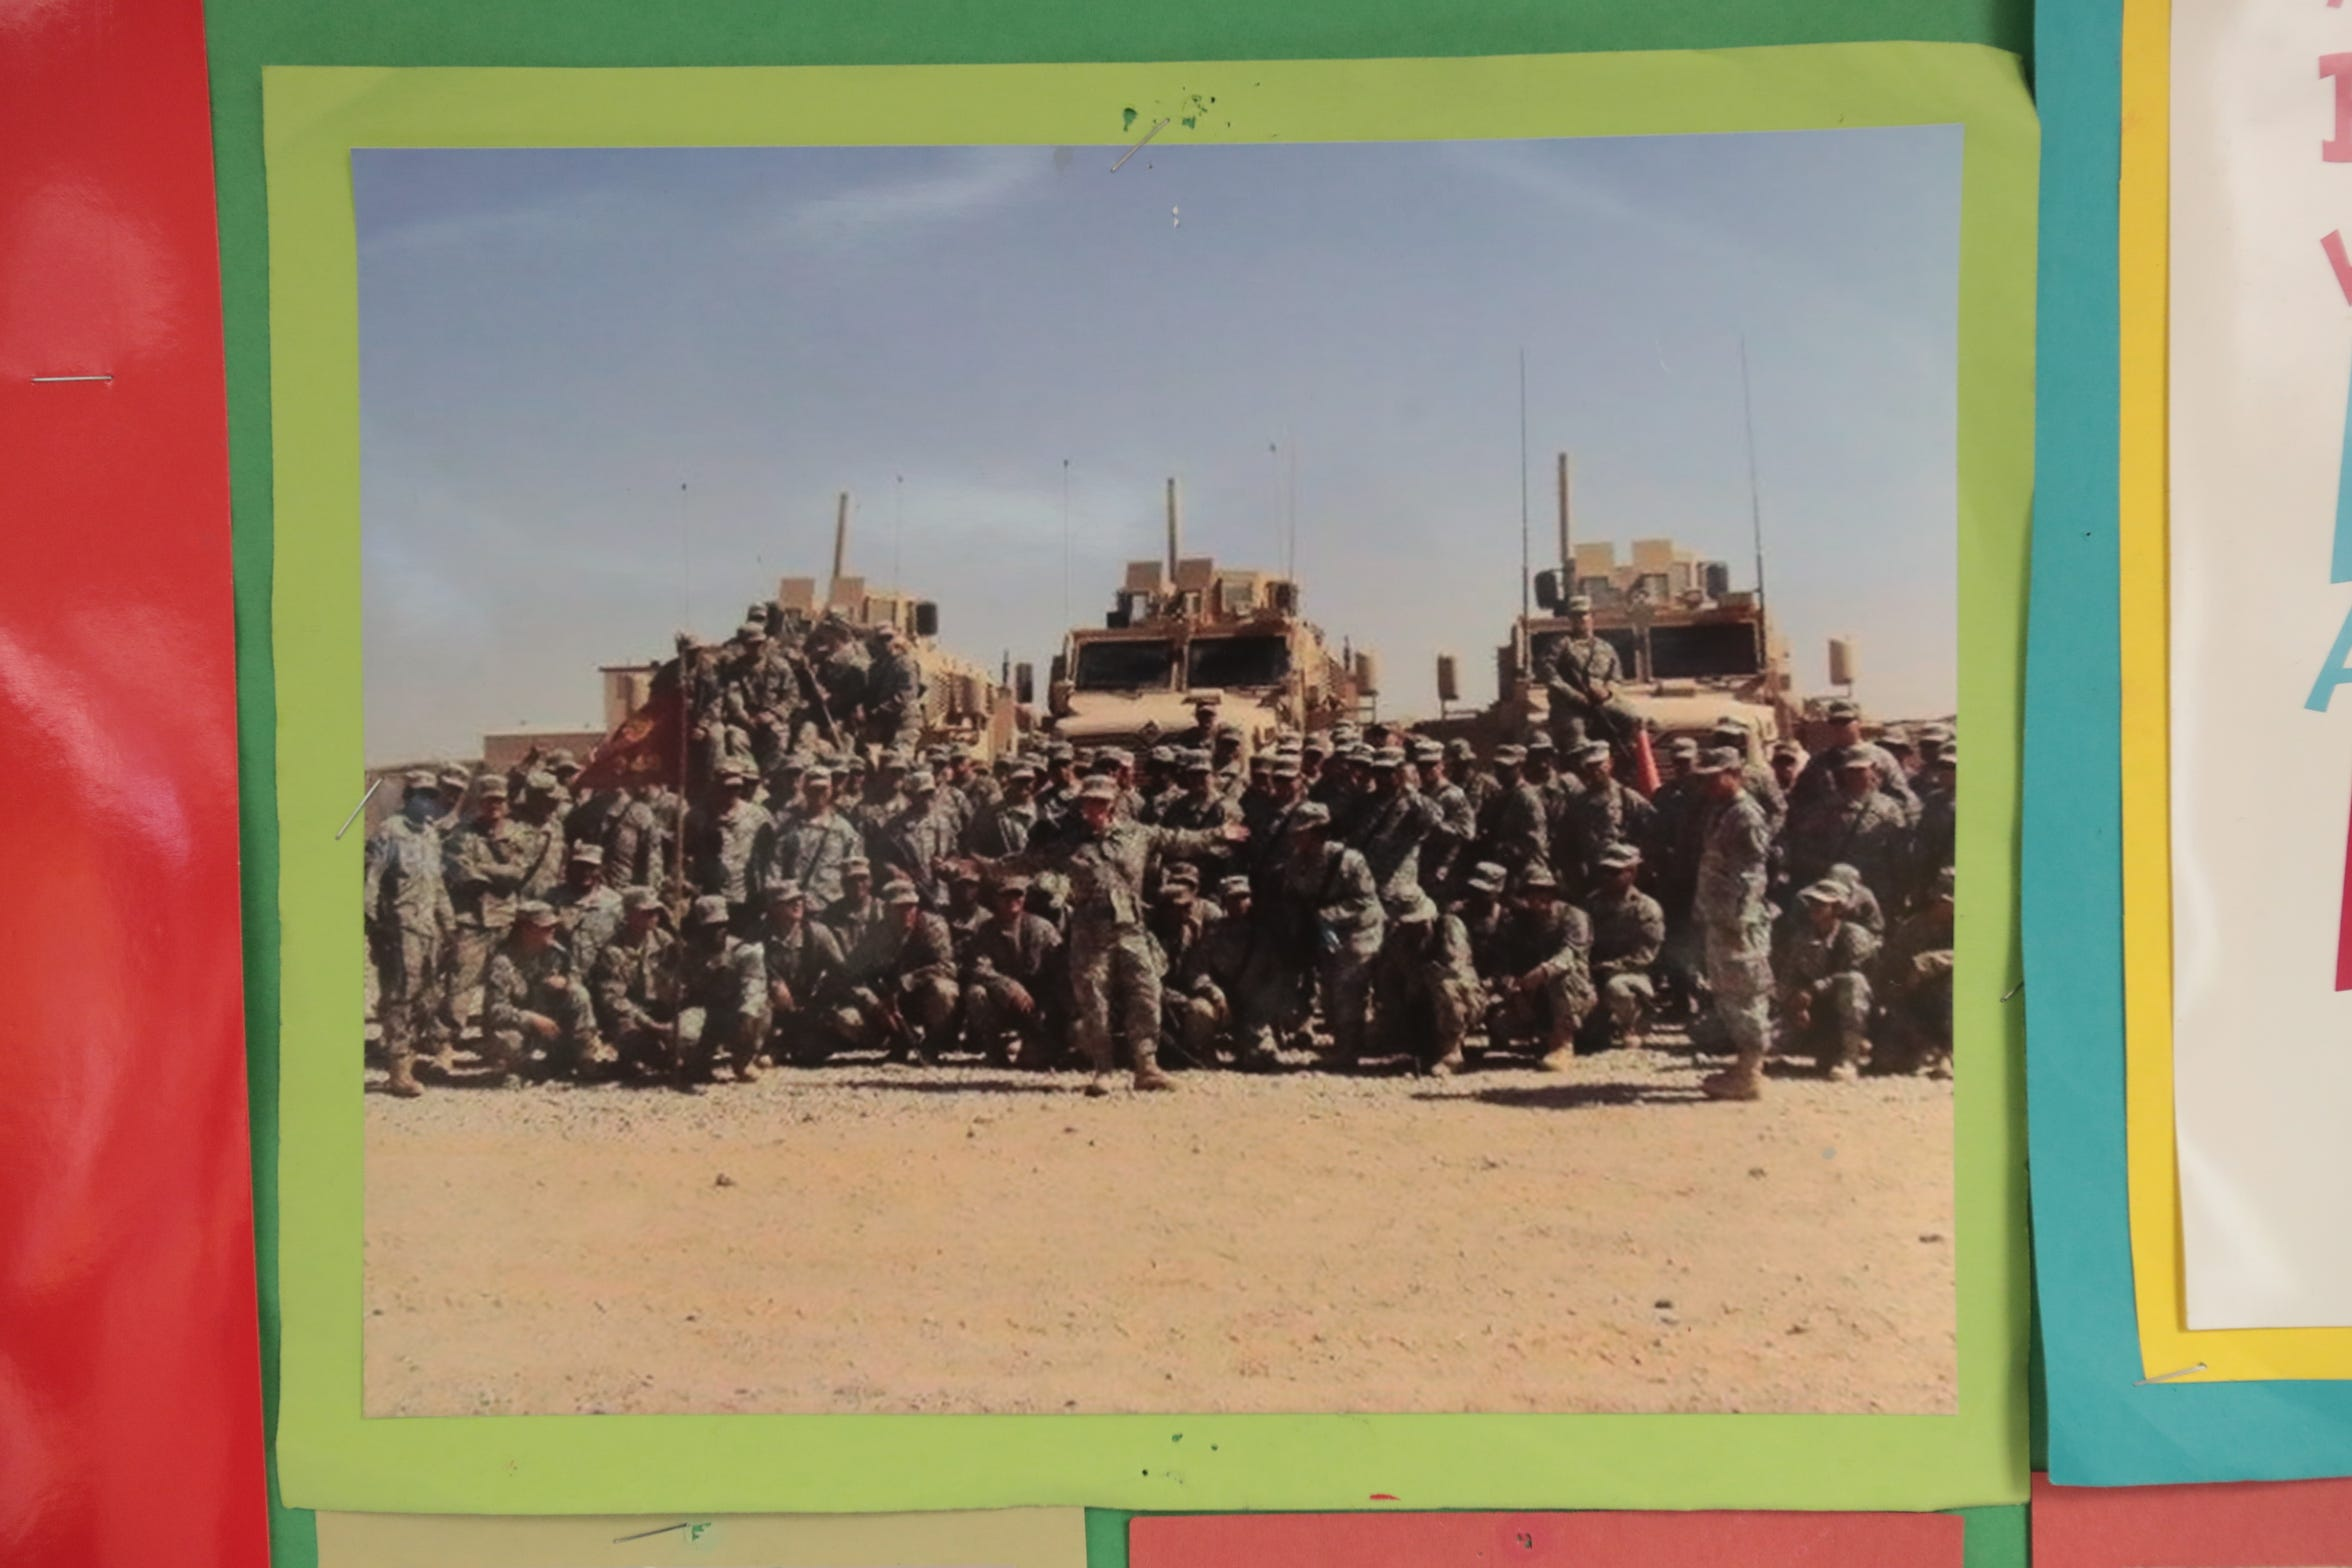 A photo of the 348th TC in Afghanistan hangs on retired U.S. Army Reserve Capt. Michelle Cherland's classroom at Lincoln Elementary on Wednesday, November 7, 2018 in Palm Desert.